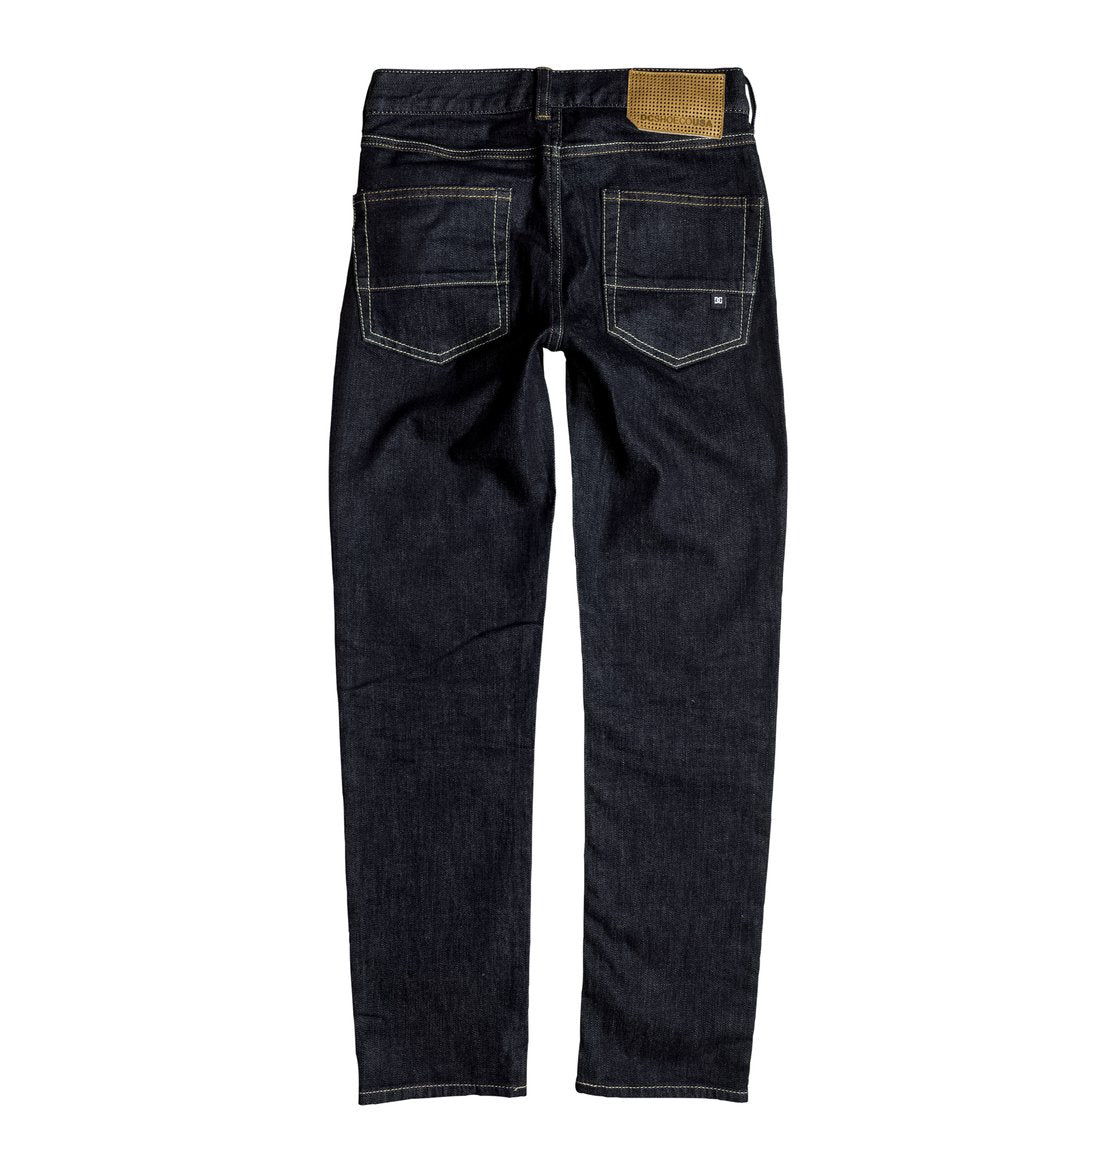 DC Boys Worker Slim Boy SIR Pants In Indigo Rinse